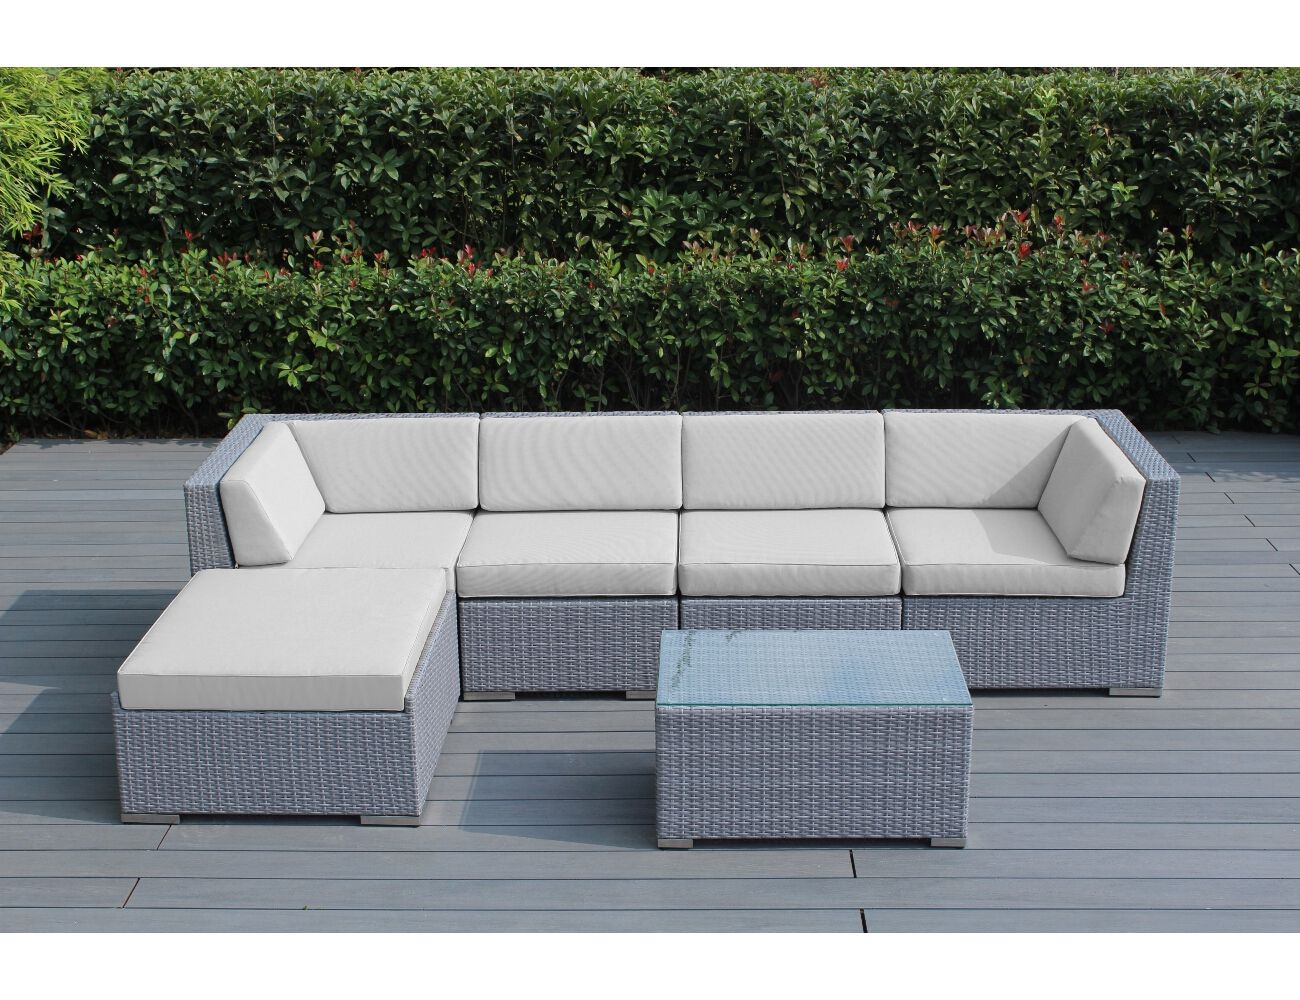 Colorful wicker patio furniture - Find This Pin And More On Gray Wicker Cushion Colors